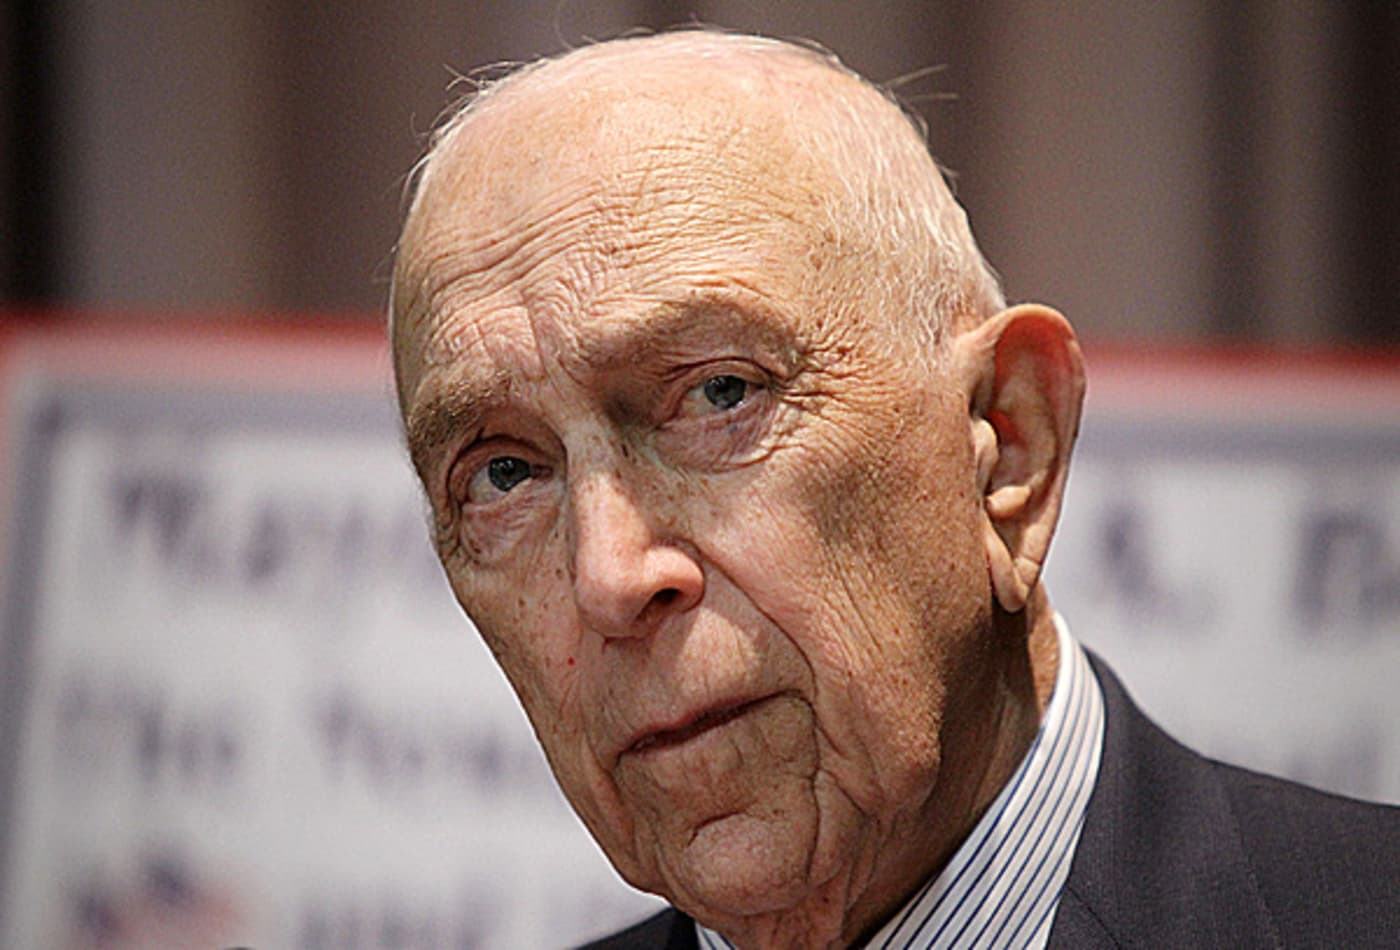 SS_richest_members_congress_2011_Lautenberg.jpg